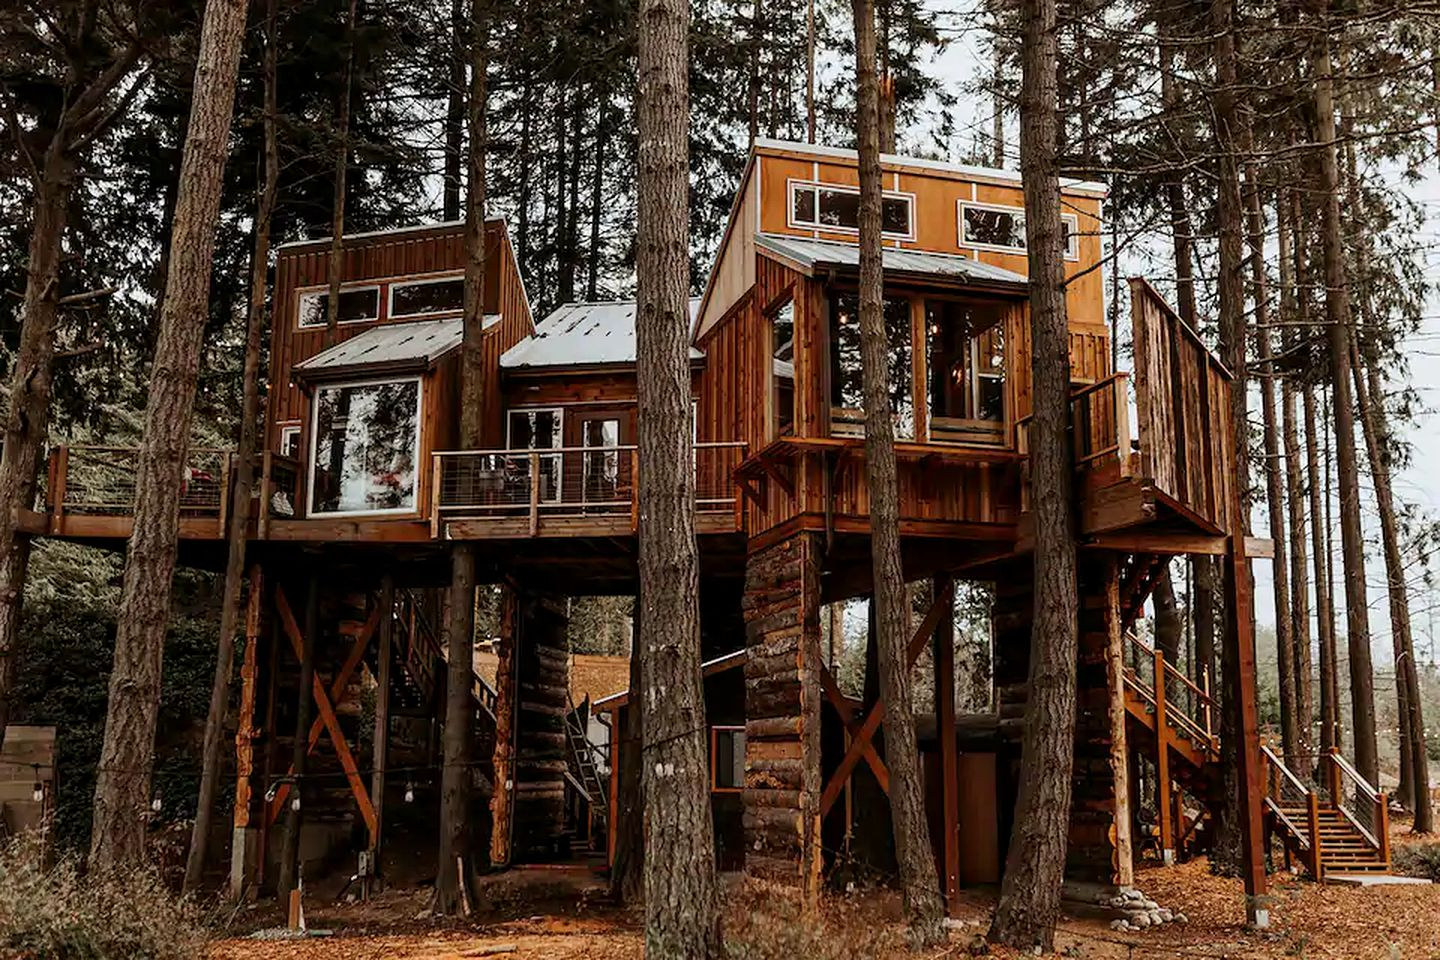 Tree house rental for glamping in Washington State